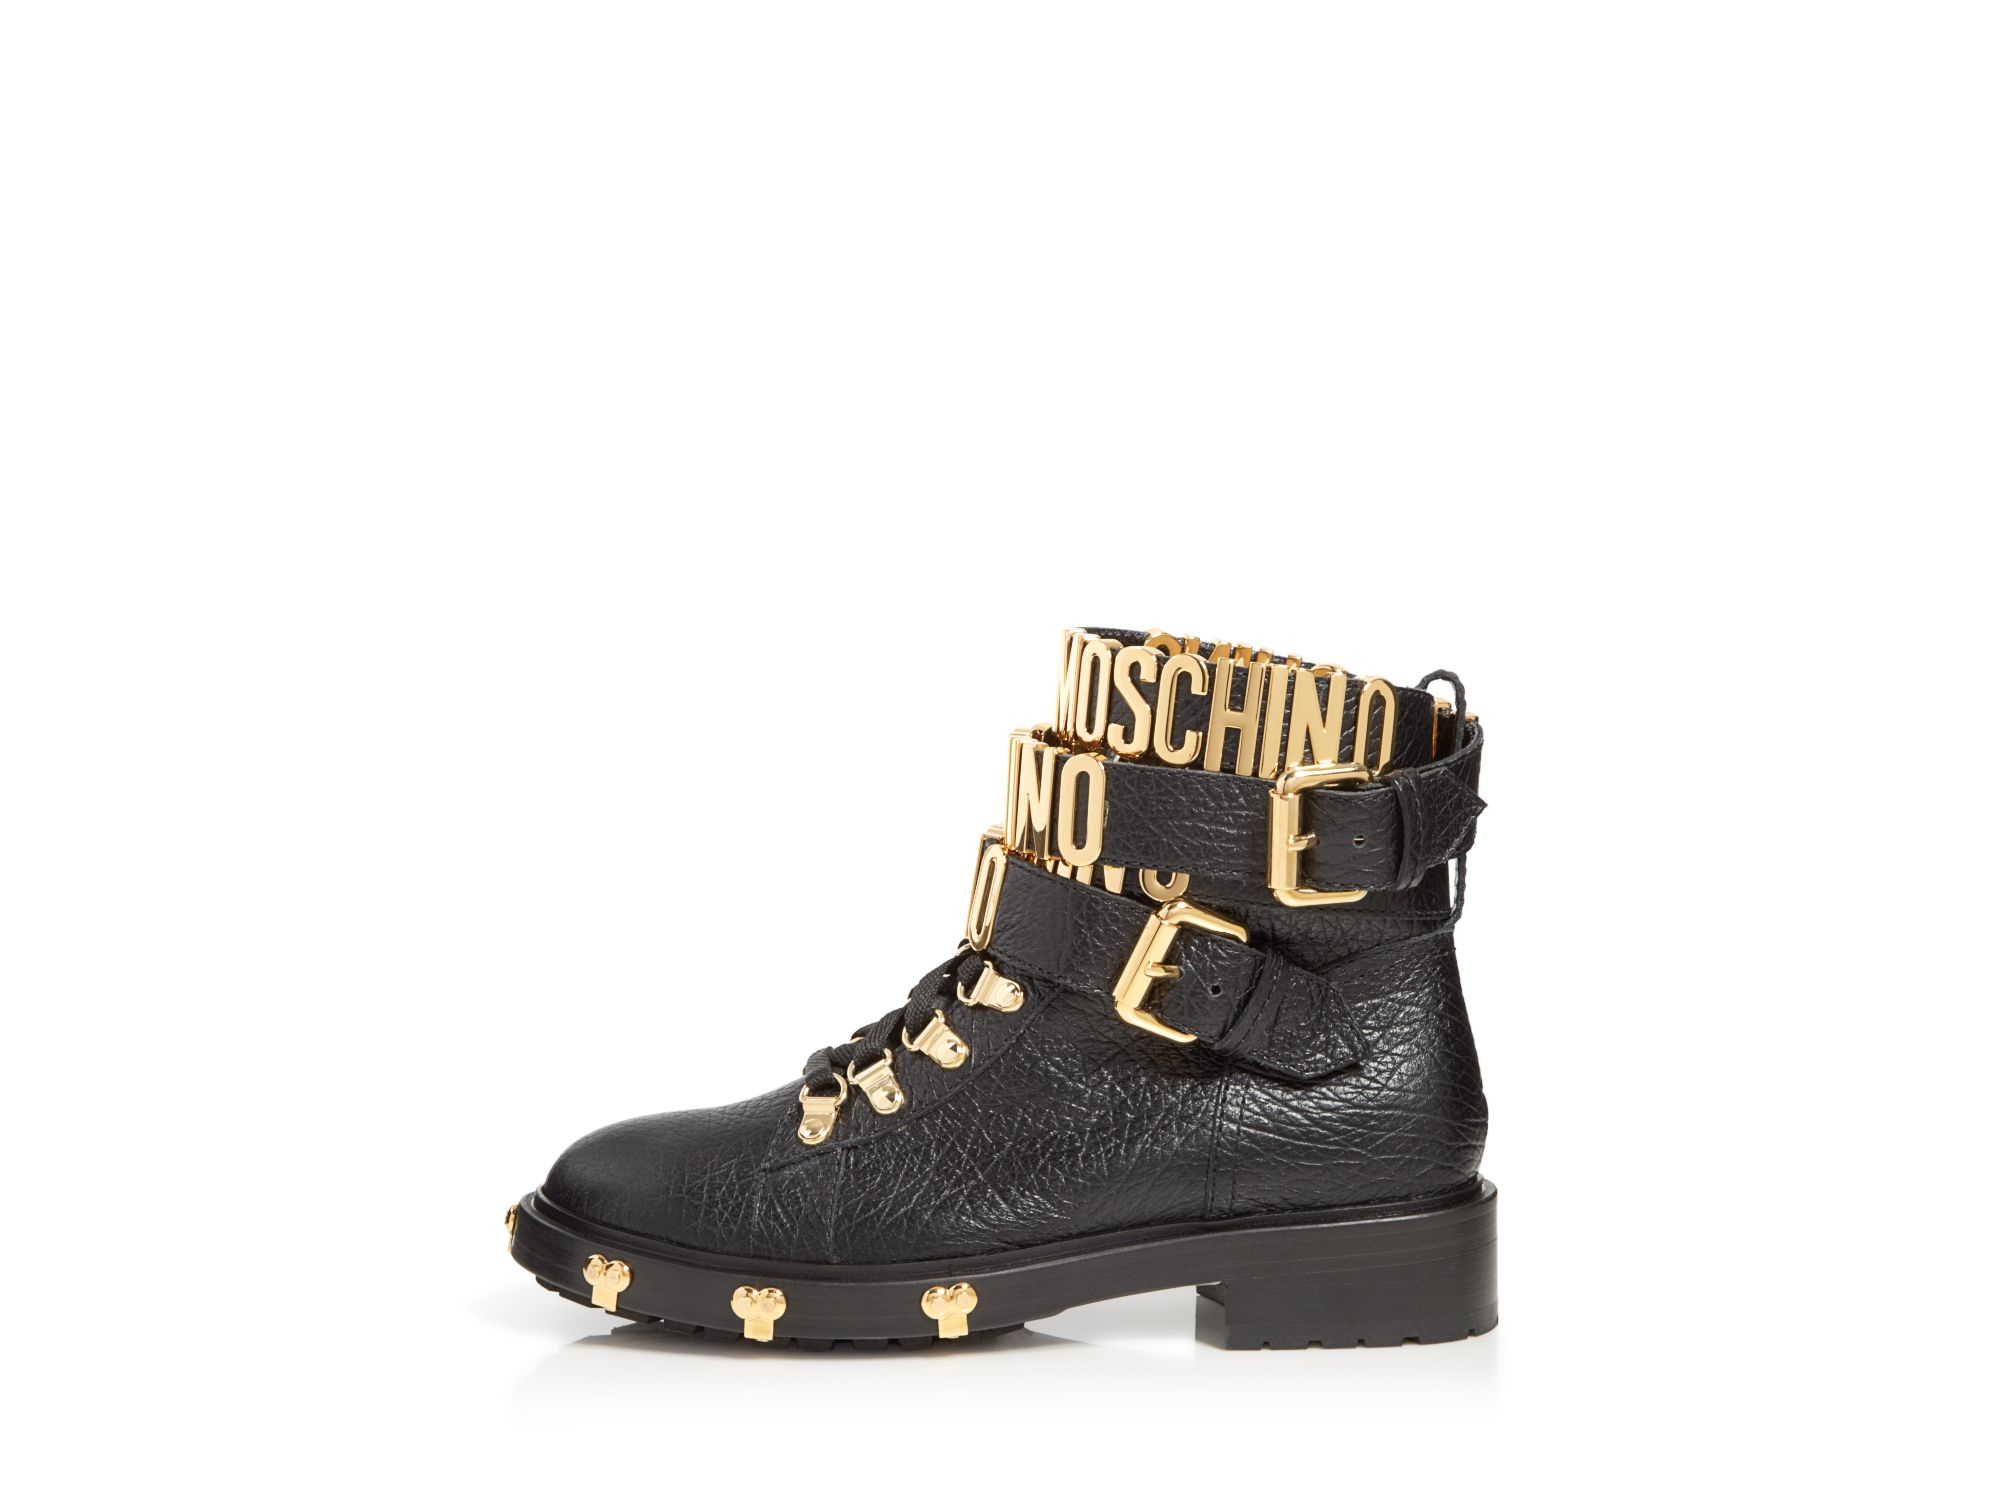 Moschino Leather Boots - Logo Strap